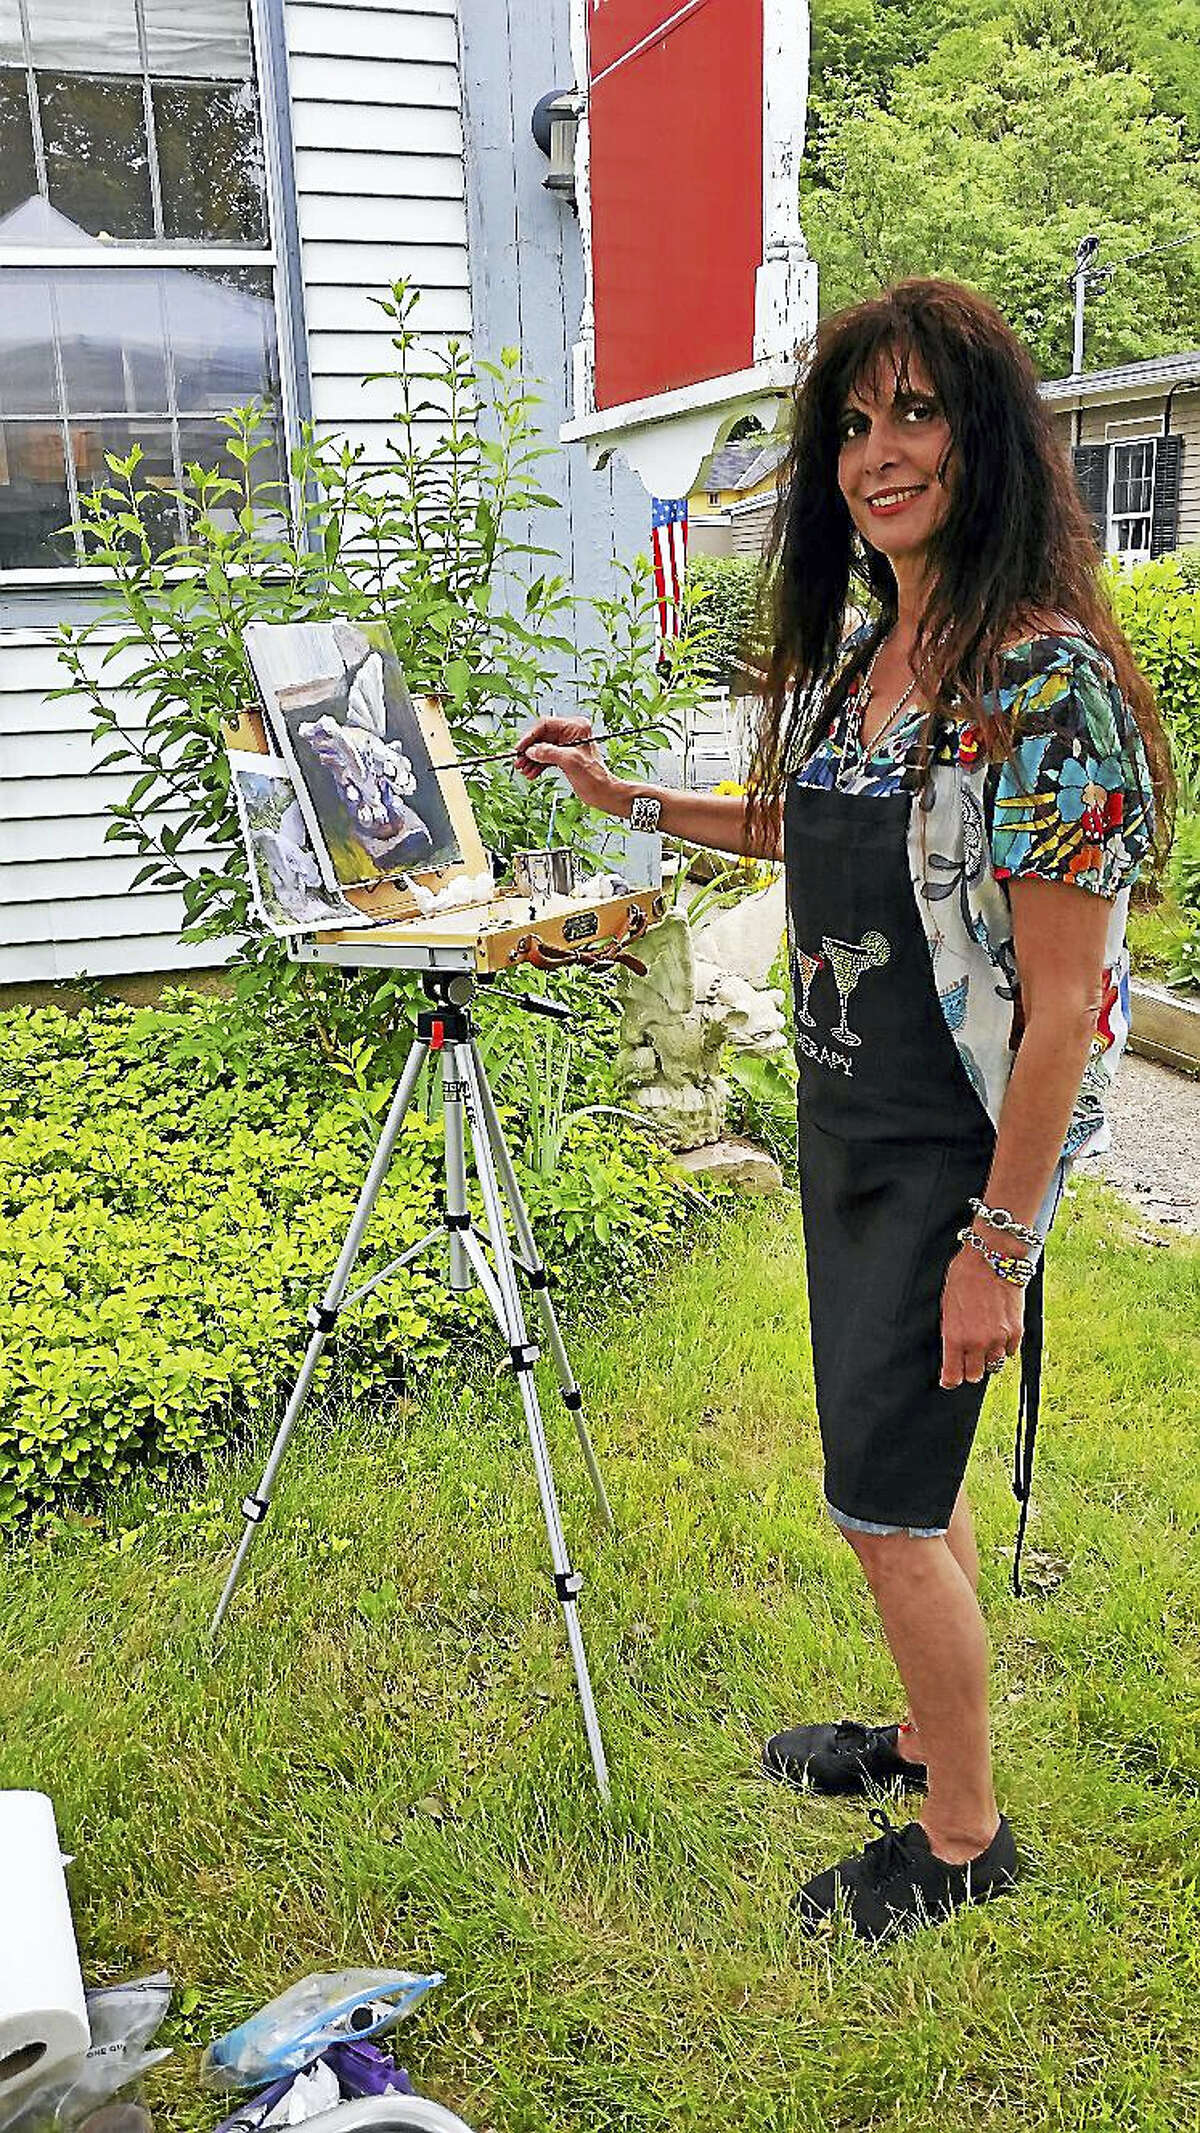 Fine Line Art Gallery board member and artist Mally DeSomma of Waterbury painted a gargoyle as a subject during the gallery's fifth annual Summer Paint-Out on the gallery's front lawn in Woodbury on Saturday.